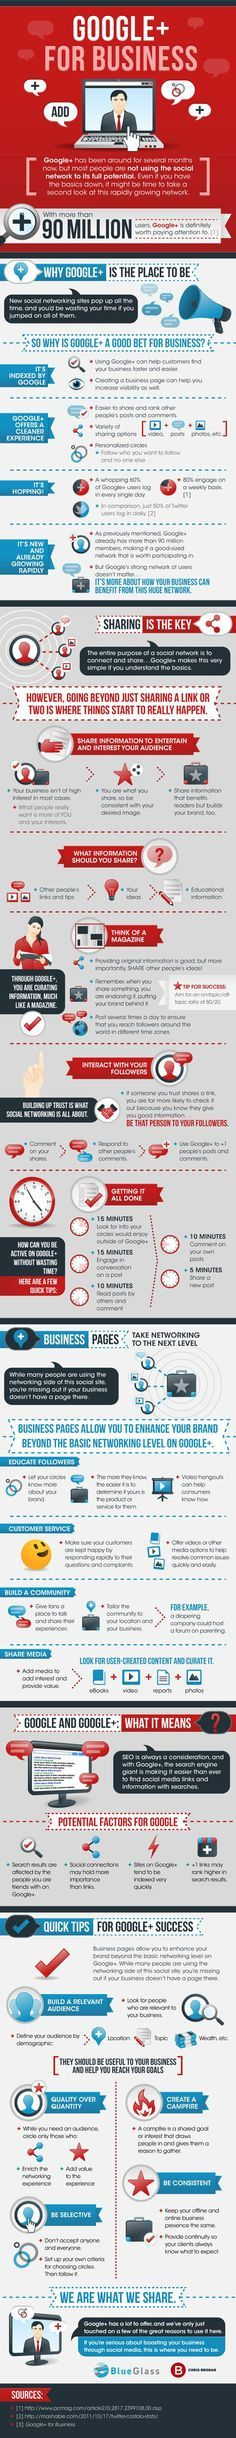 Here are 40 of the best Google+ Small Business #Marketing Tips in an #Infographic  www.november.media